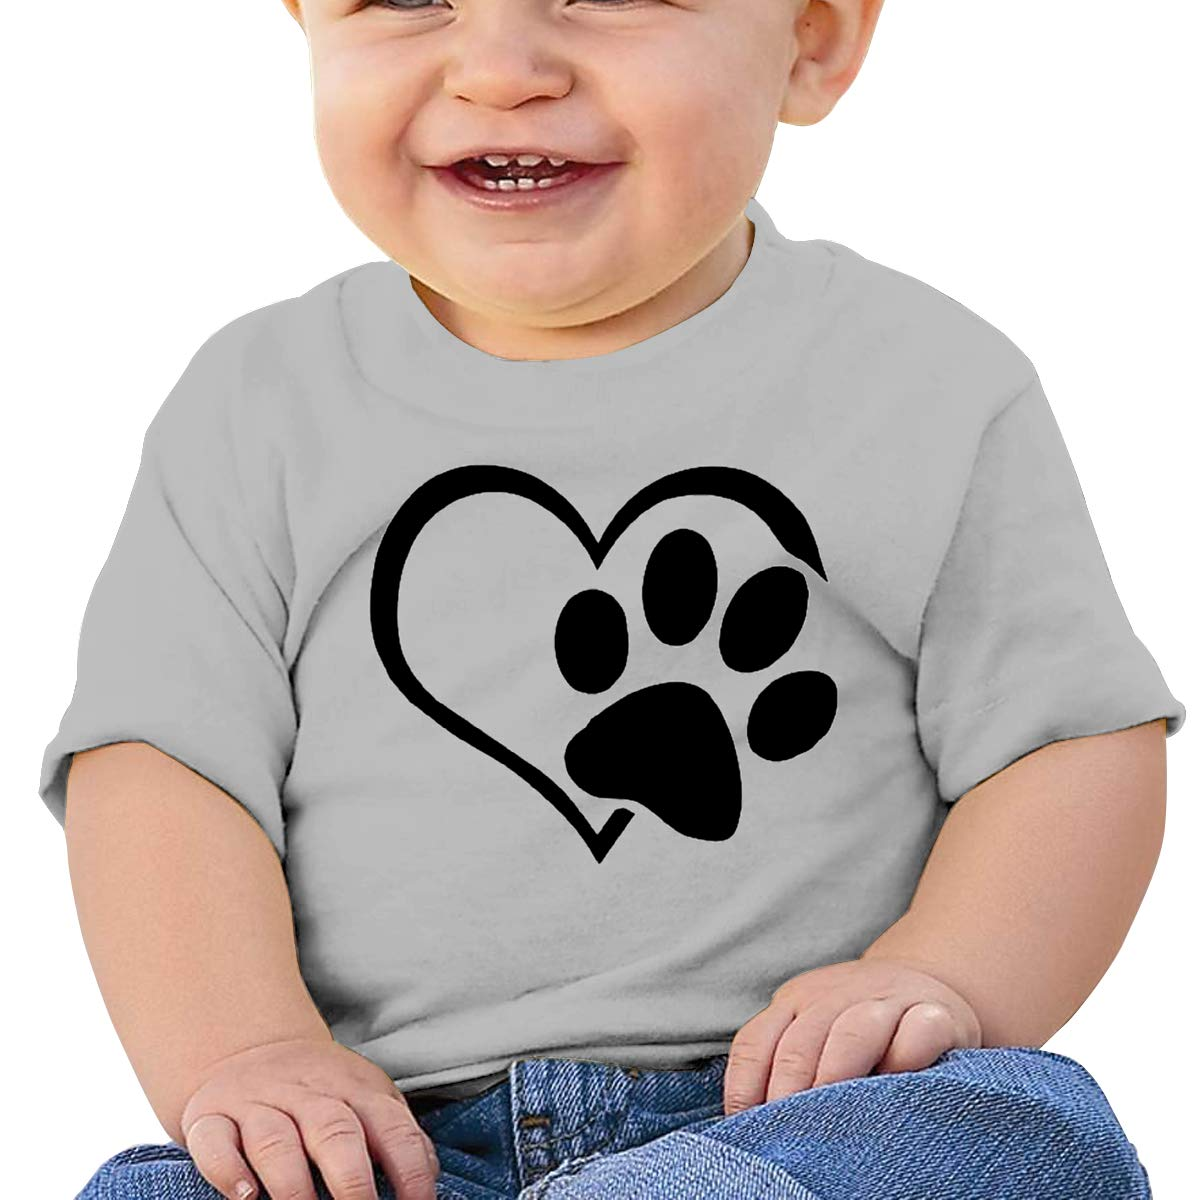 Dog-cat-paw-Heart Baby T-Shirt Toddler//Infant Cotton T Shirts Soft Clothes for 6M-2T Baby